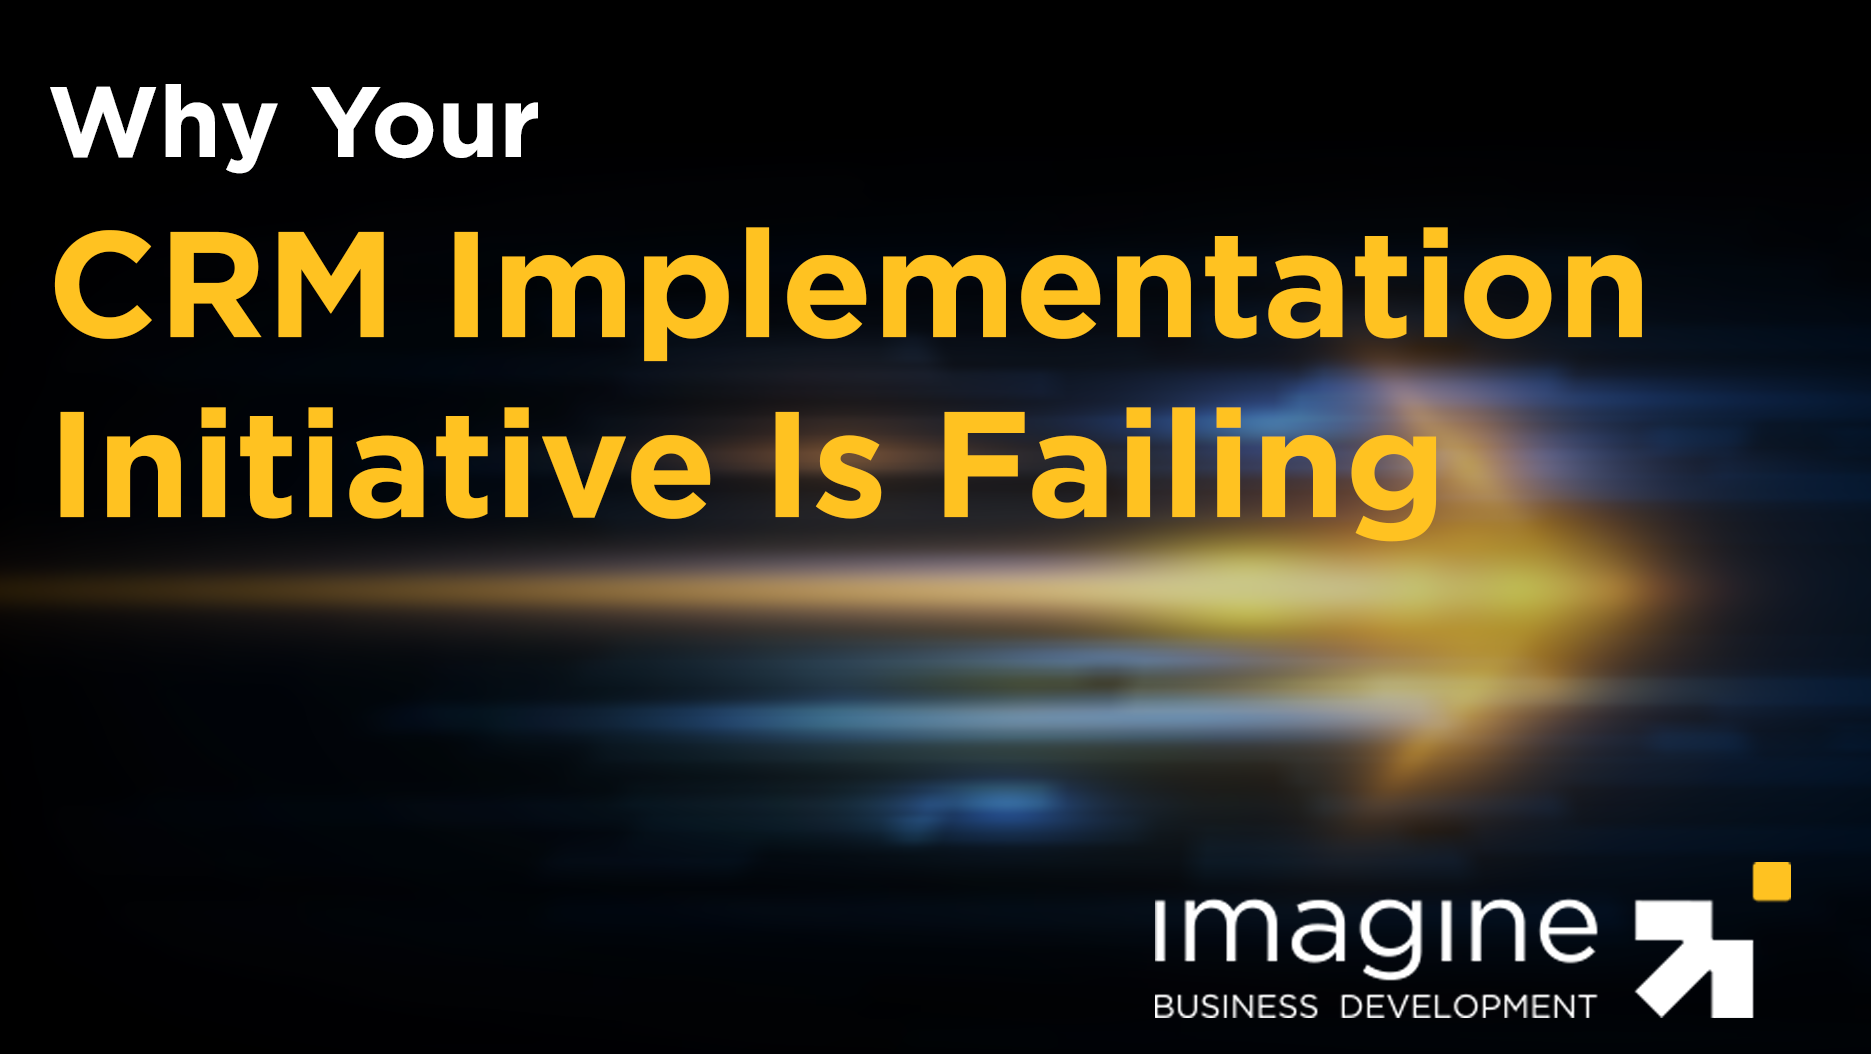 why-your-crm-implementation-is-failing-cta